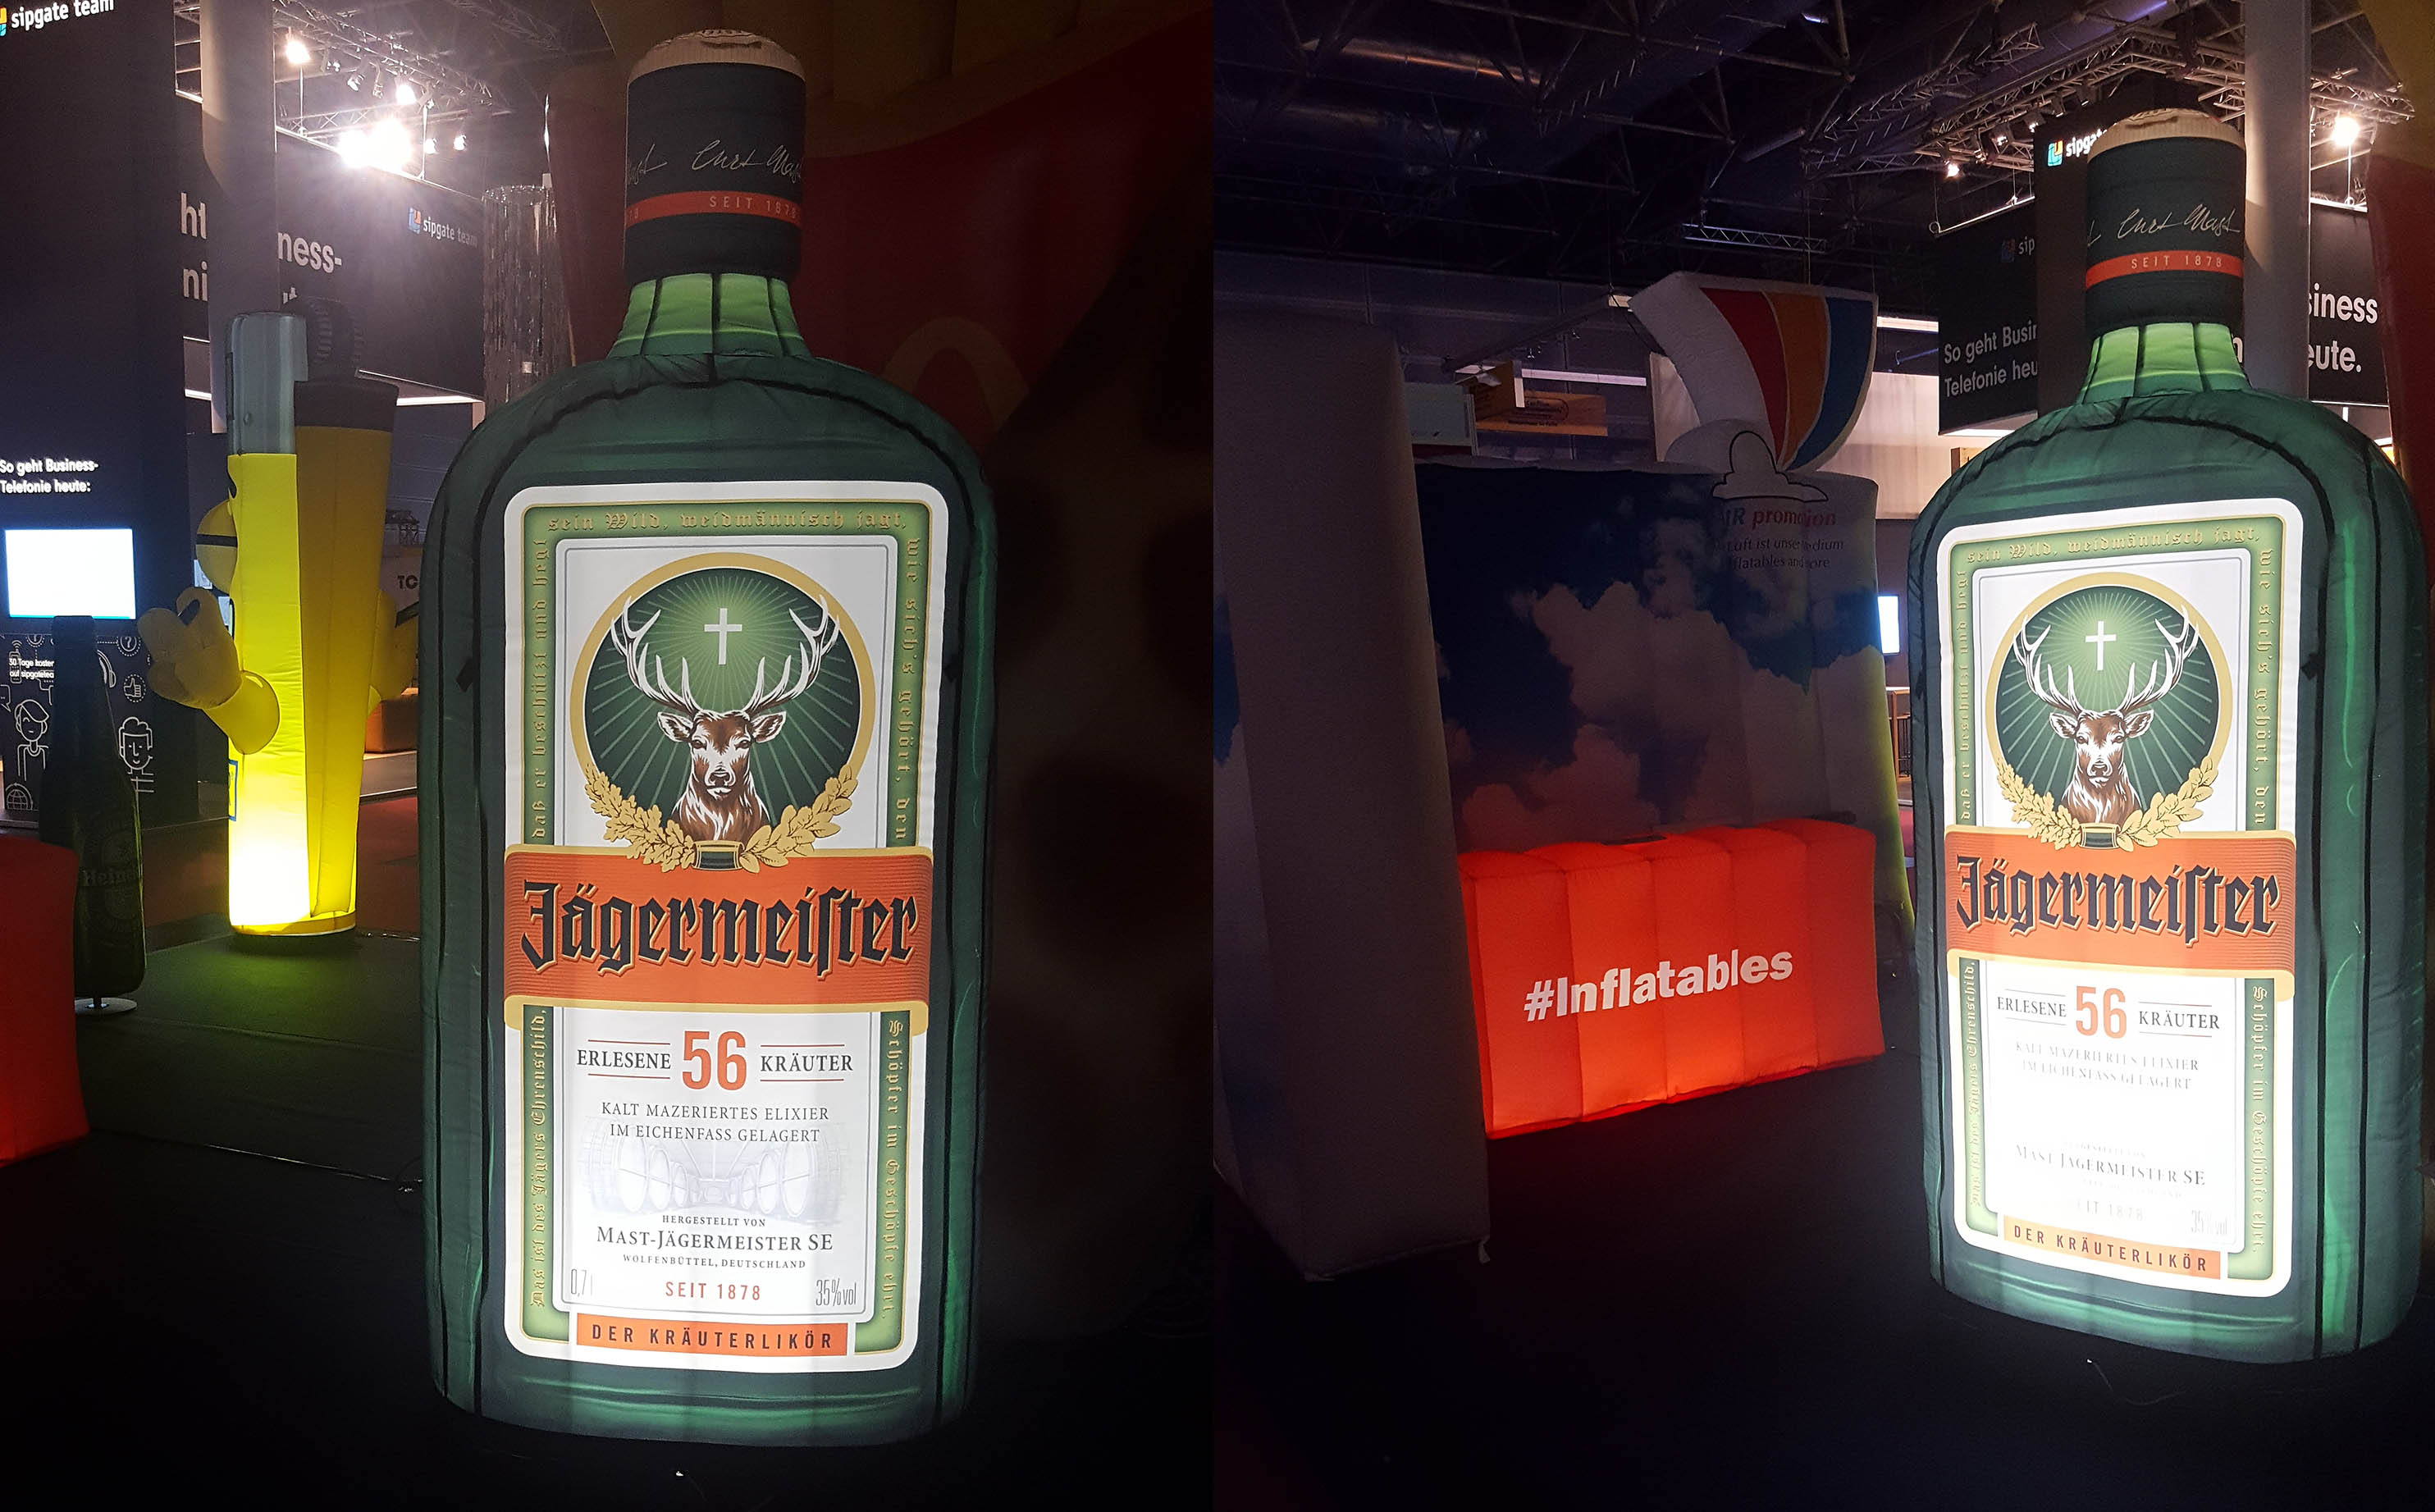 inflatable-fair-trump-plush-figure